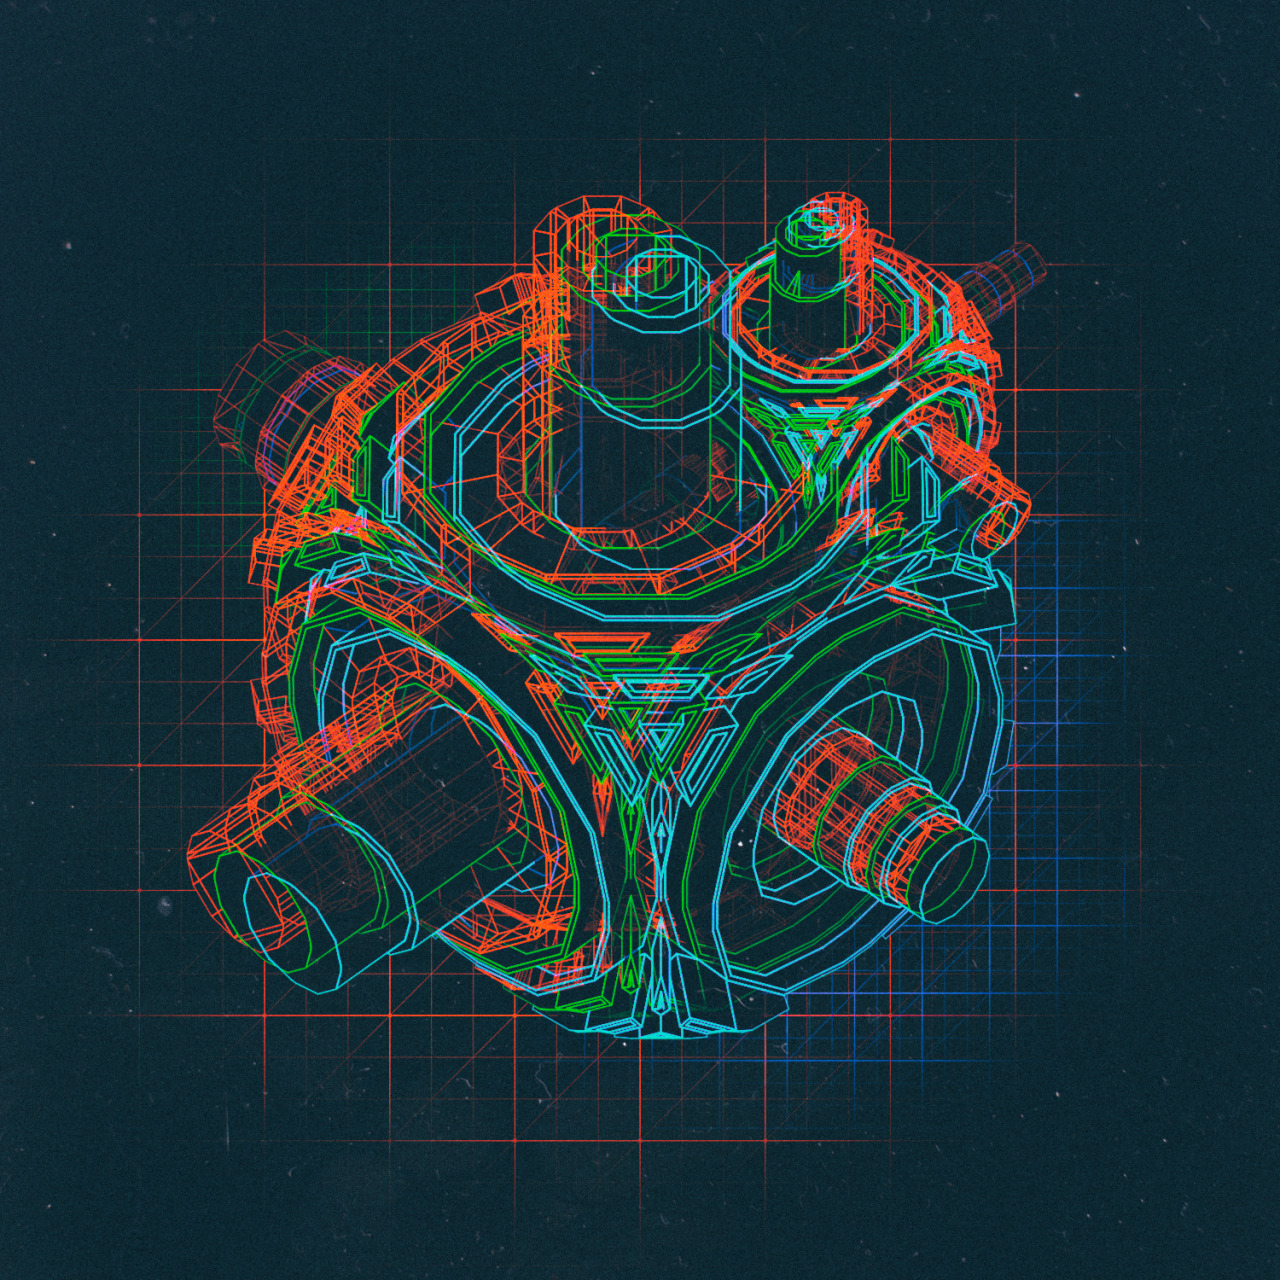 beeple_03_RGB VENTRICLE